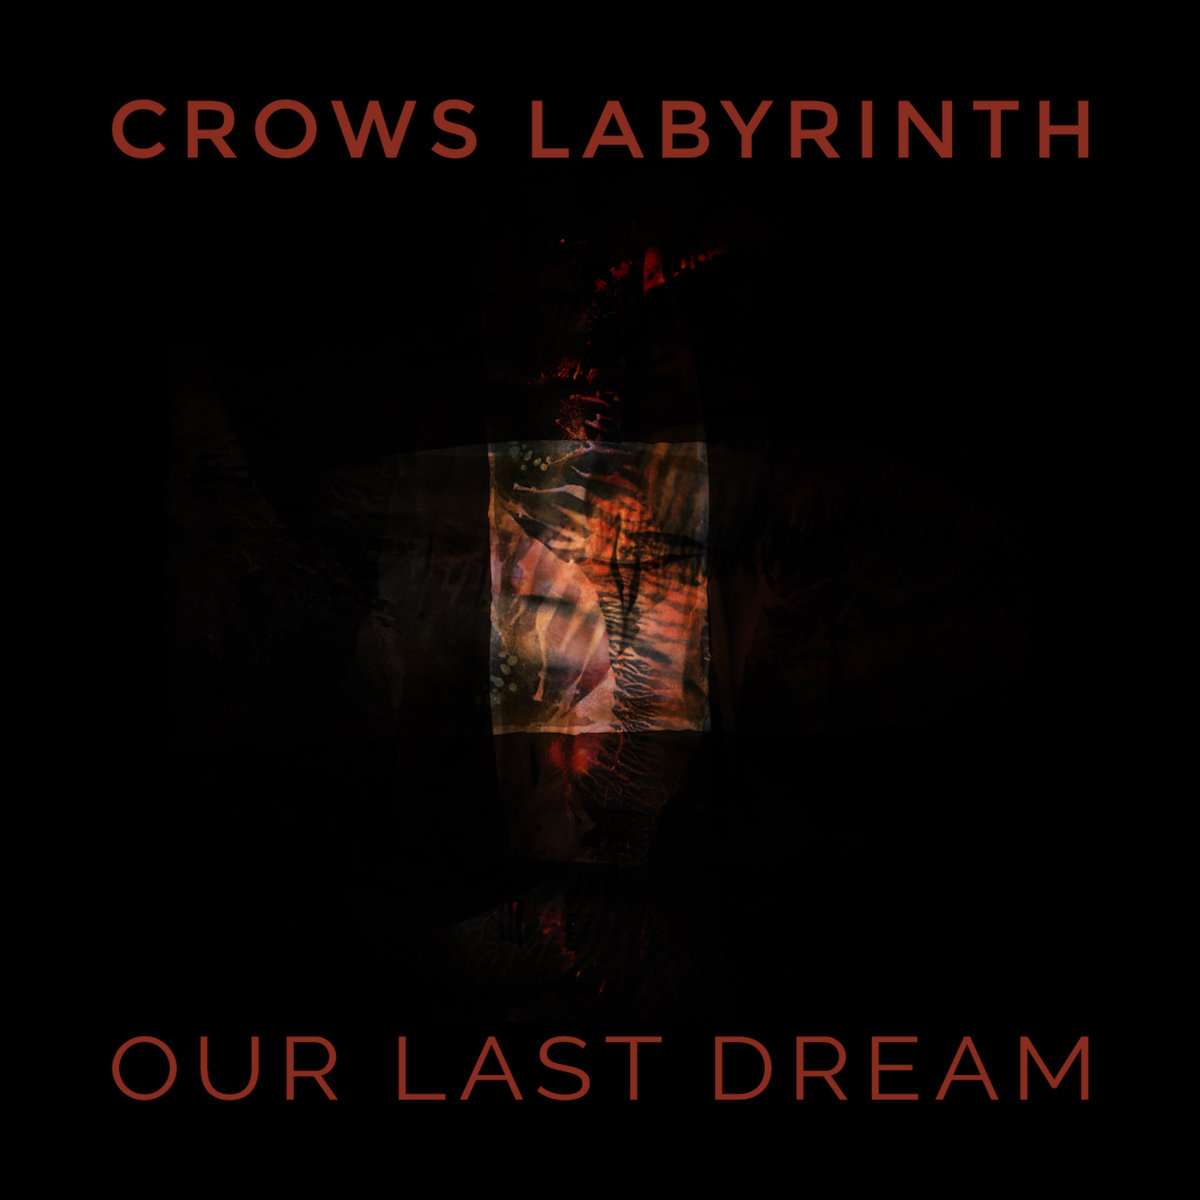 Crows Labyrinth - Our Last Dream